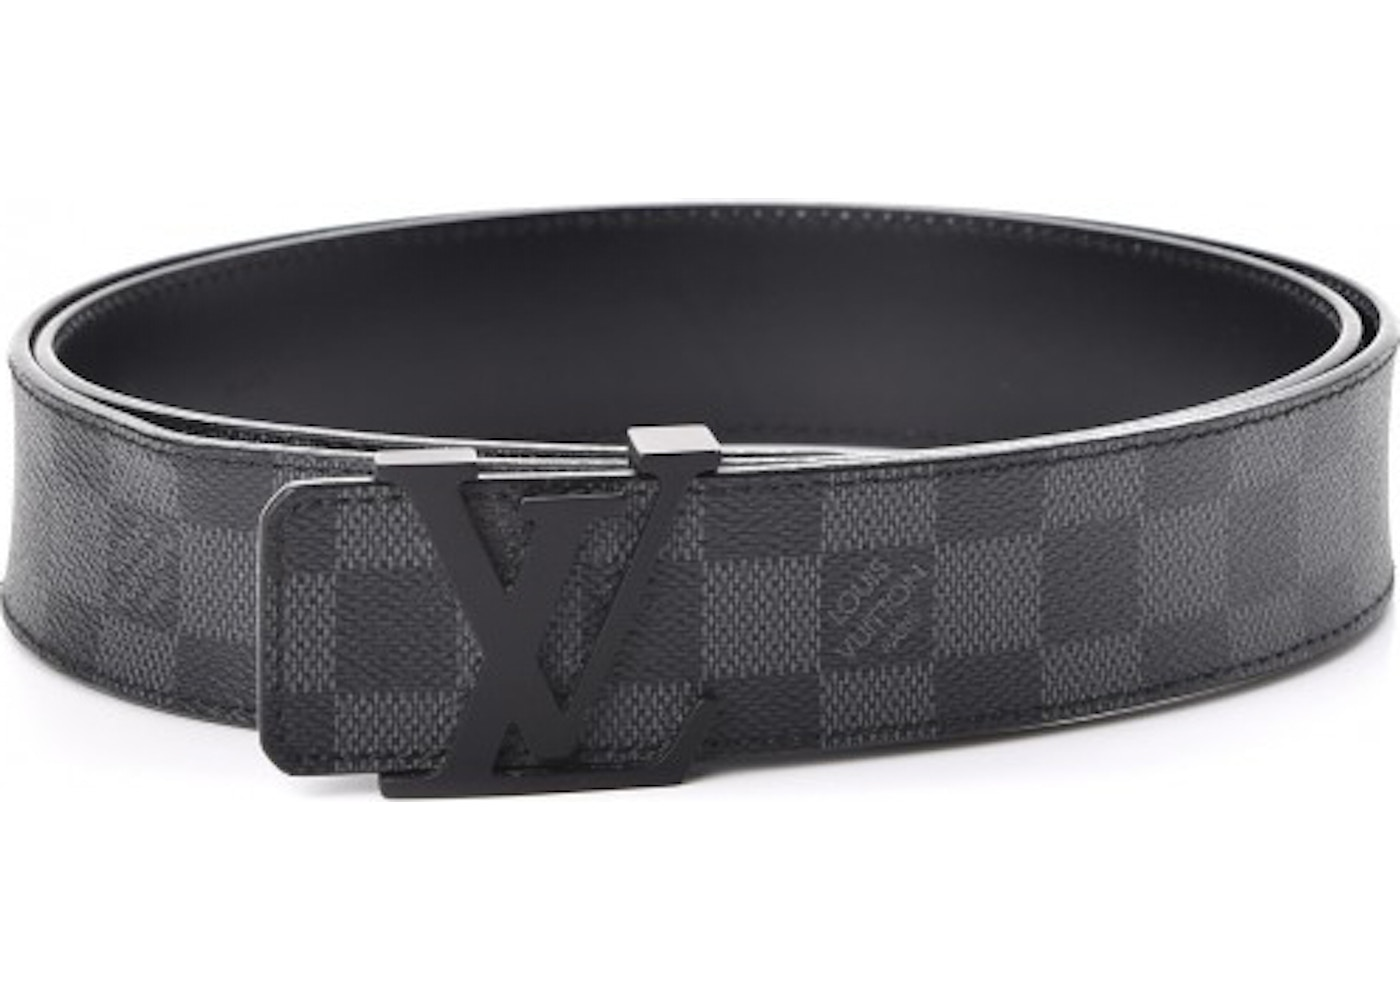 Louis Vuitton Belt Sale Us Sema Data Co Op